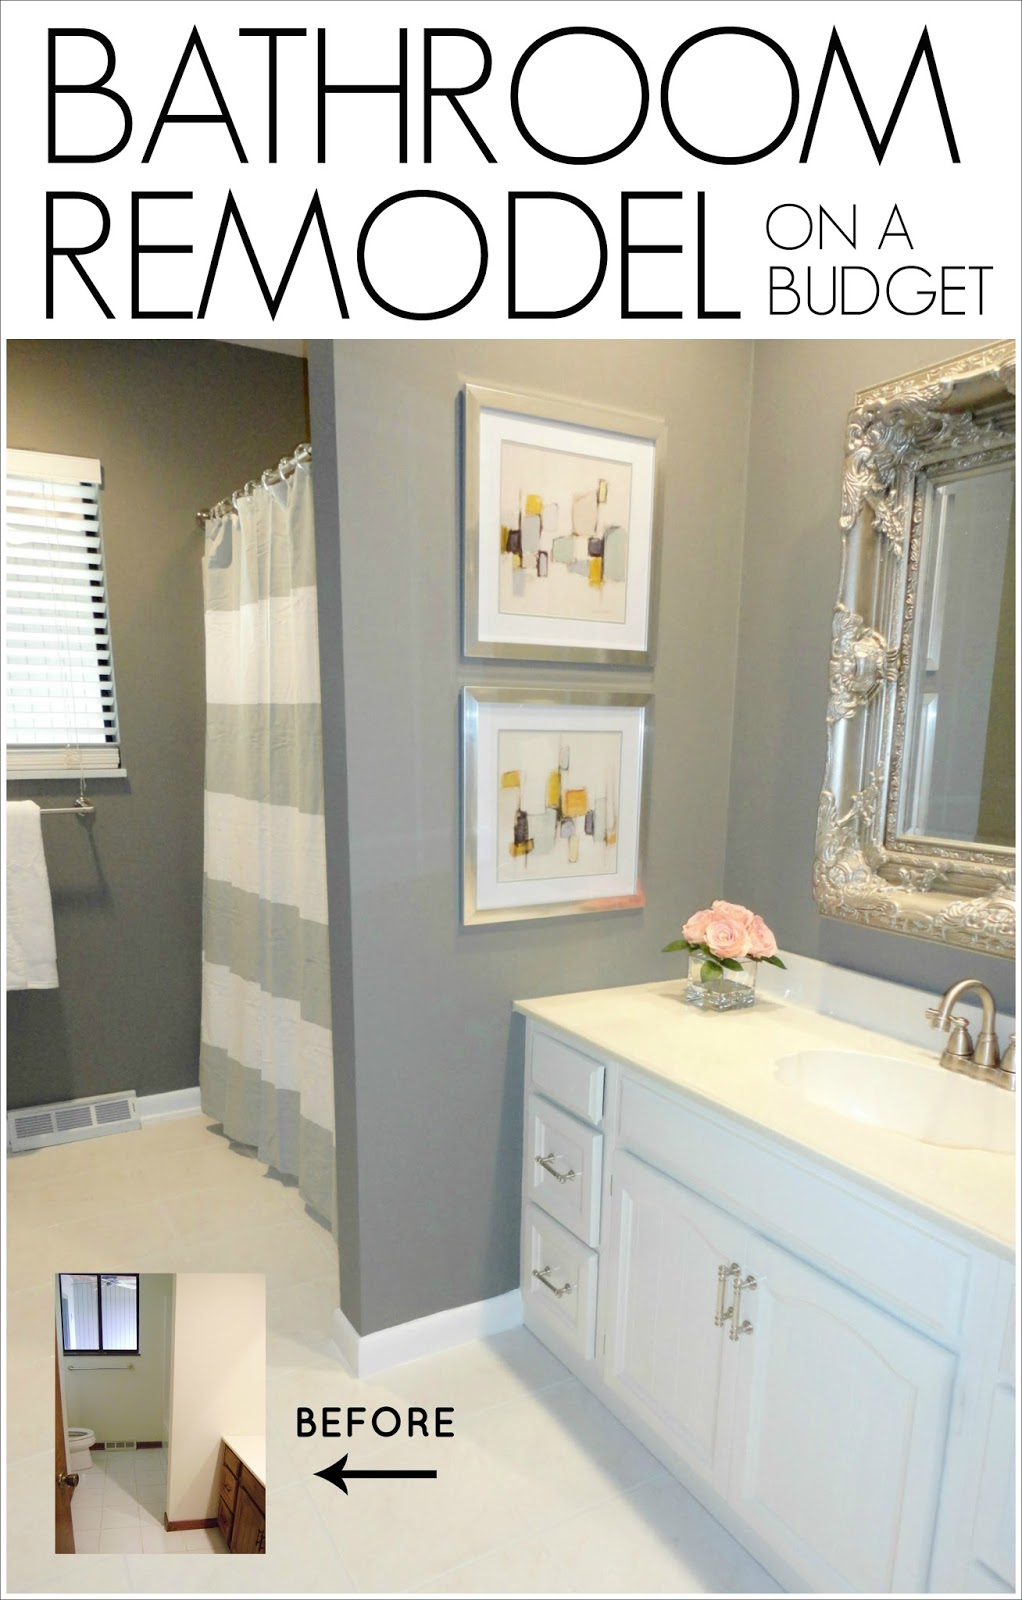 livelovediy diy bathroom remodel on a budget bathroom renovation ideas for tight budget home design